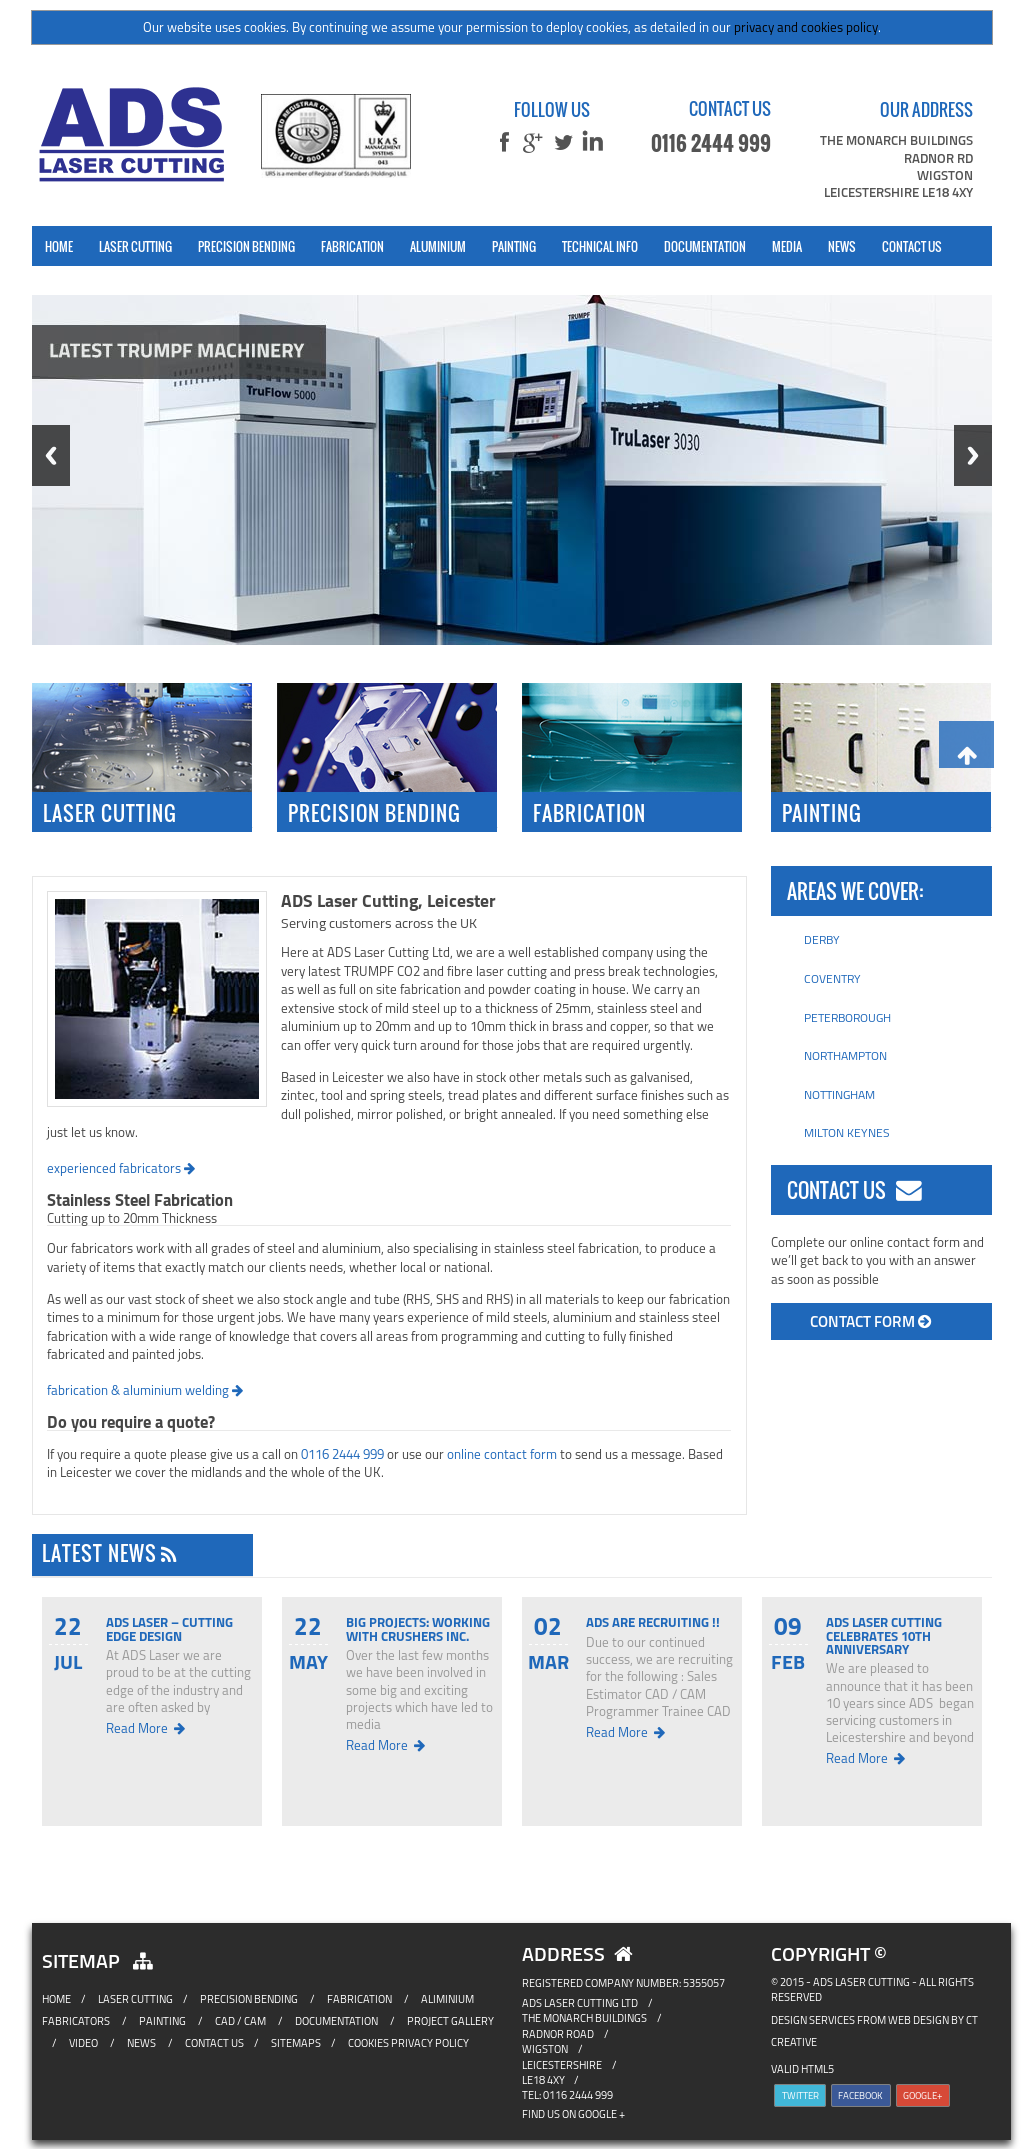 Ads Laser Cutting Competitors, Revenue and Employees - Owler